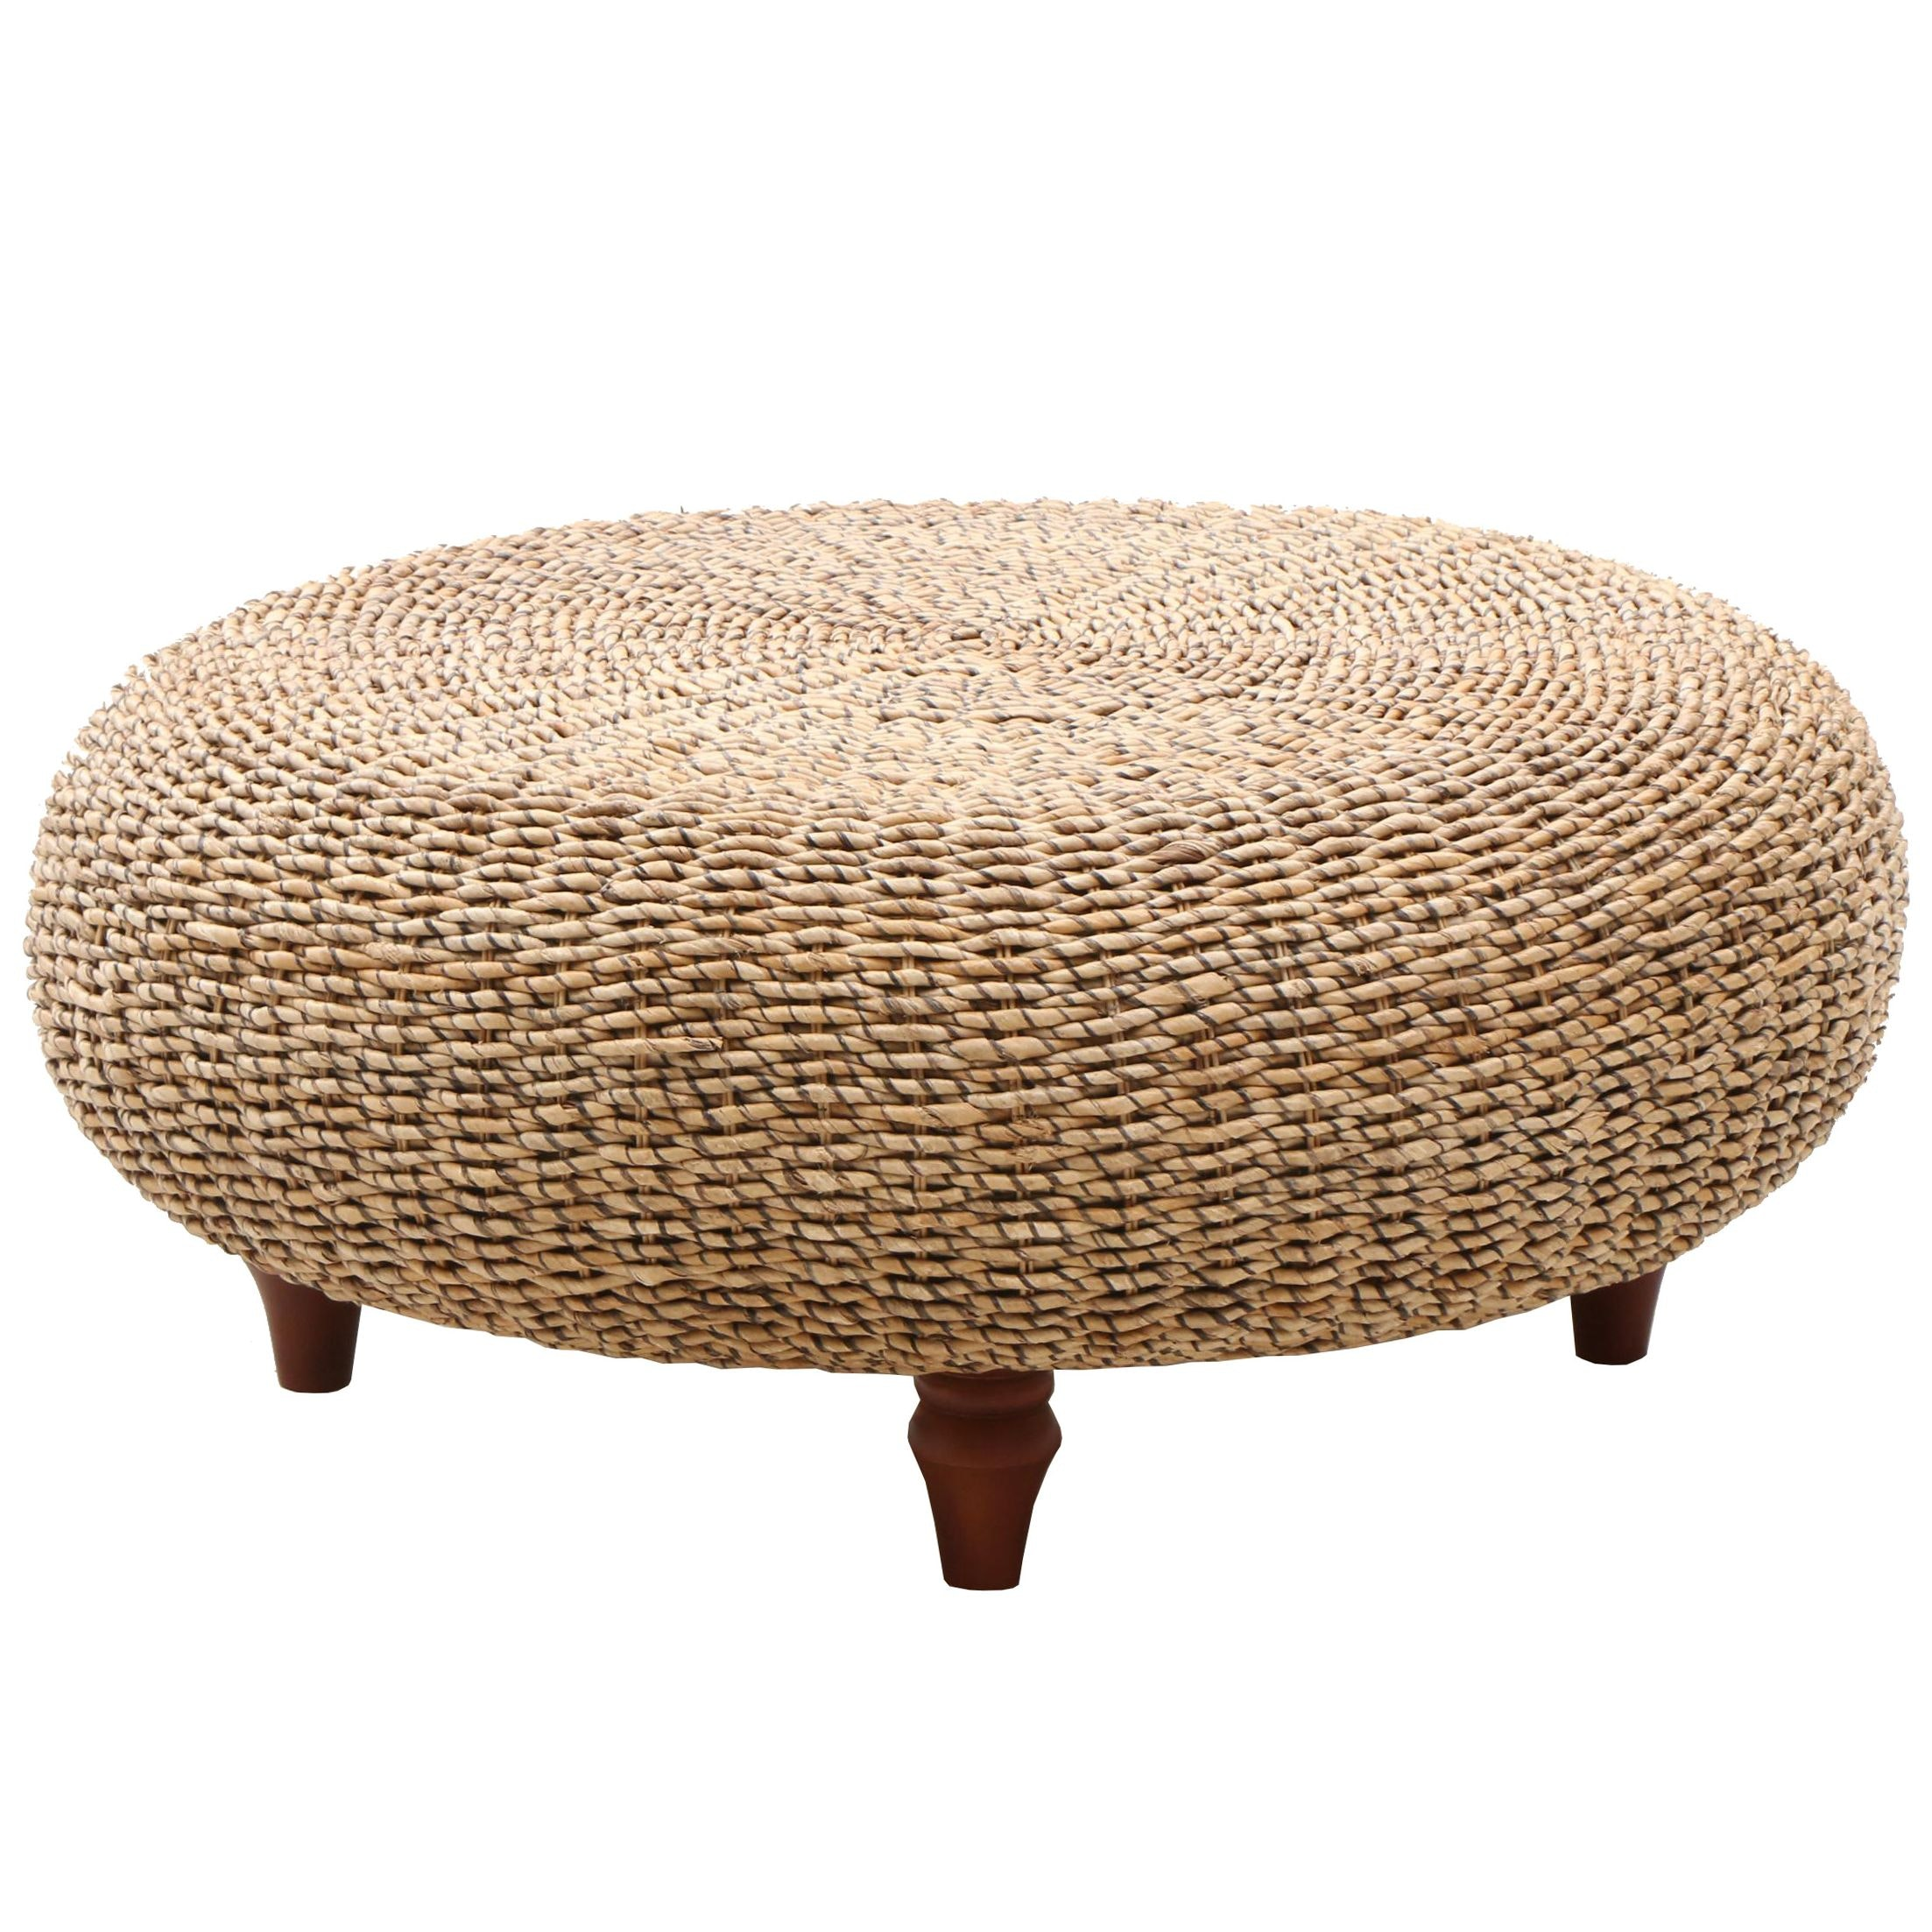 Ottoman in Woven Banana Fiber by Padma's Plantation